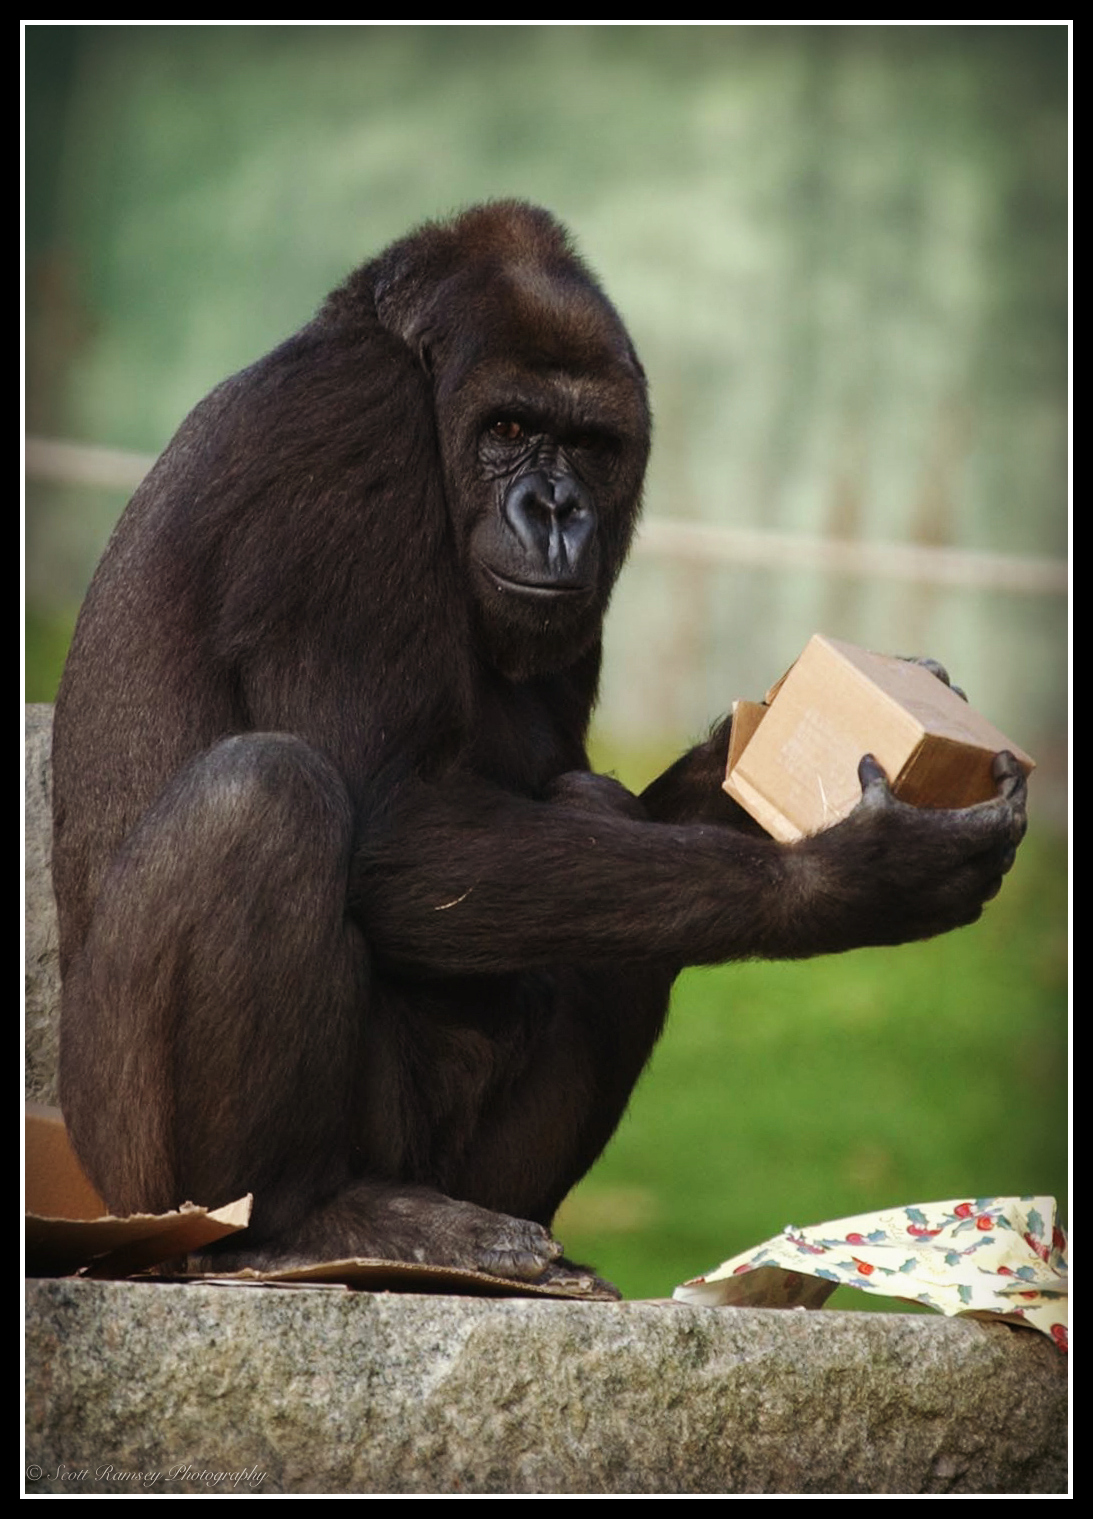 Emmie a 10 year old hand reared Western Lowland Gorilla at Port Lympne Wild Animal Park in Kent prefers to play with an empty box and wrapping paper rather than the presents Father Christmas has just delivered.